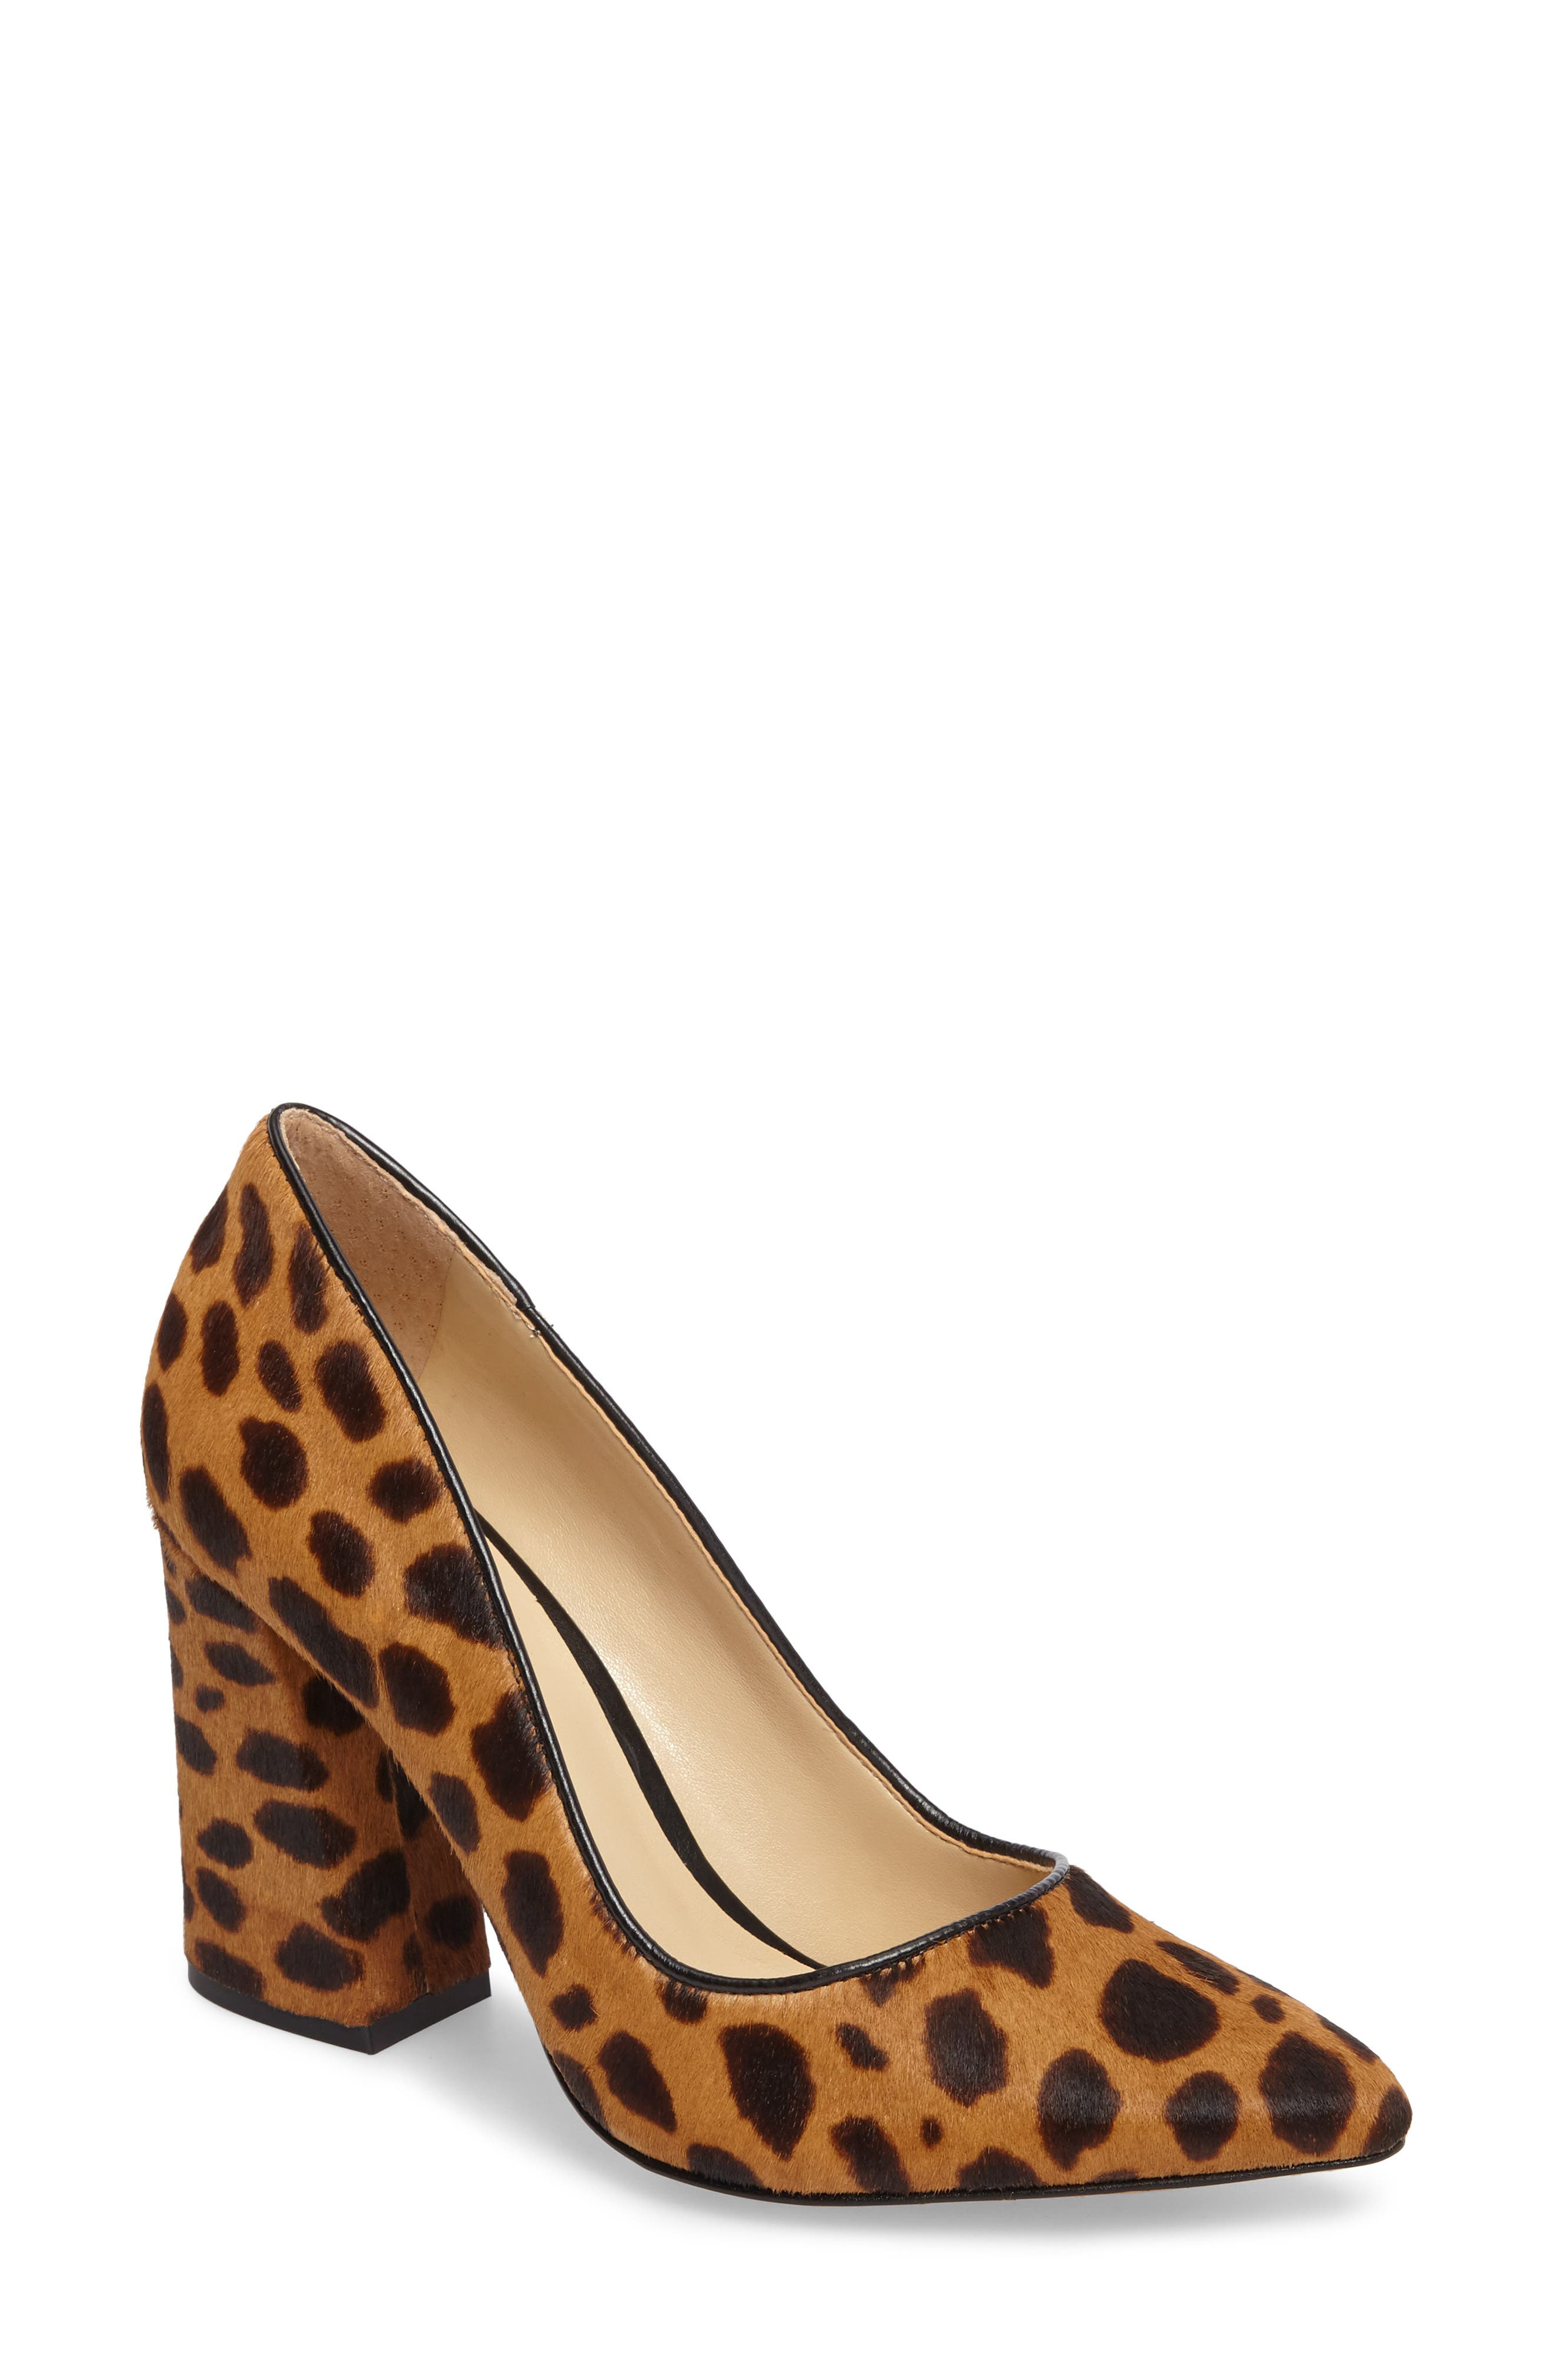 Alternate Image 1 Selected - Vince Camuto Talise Genuine Calf Hair Pointy Toe Pump (Women)